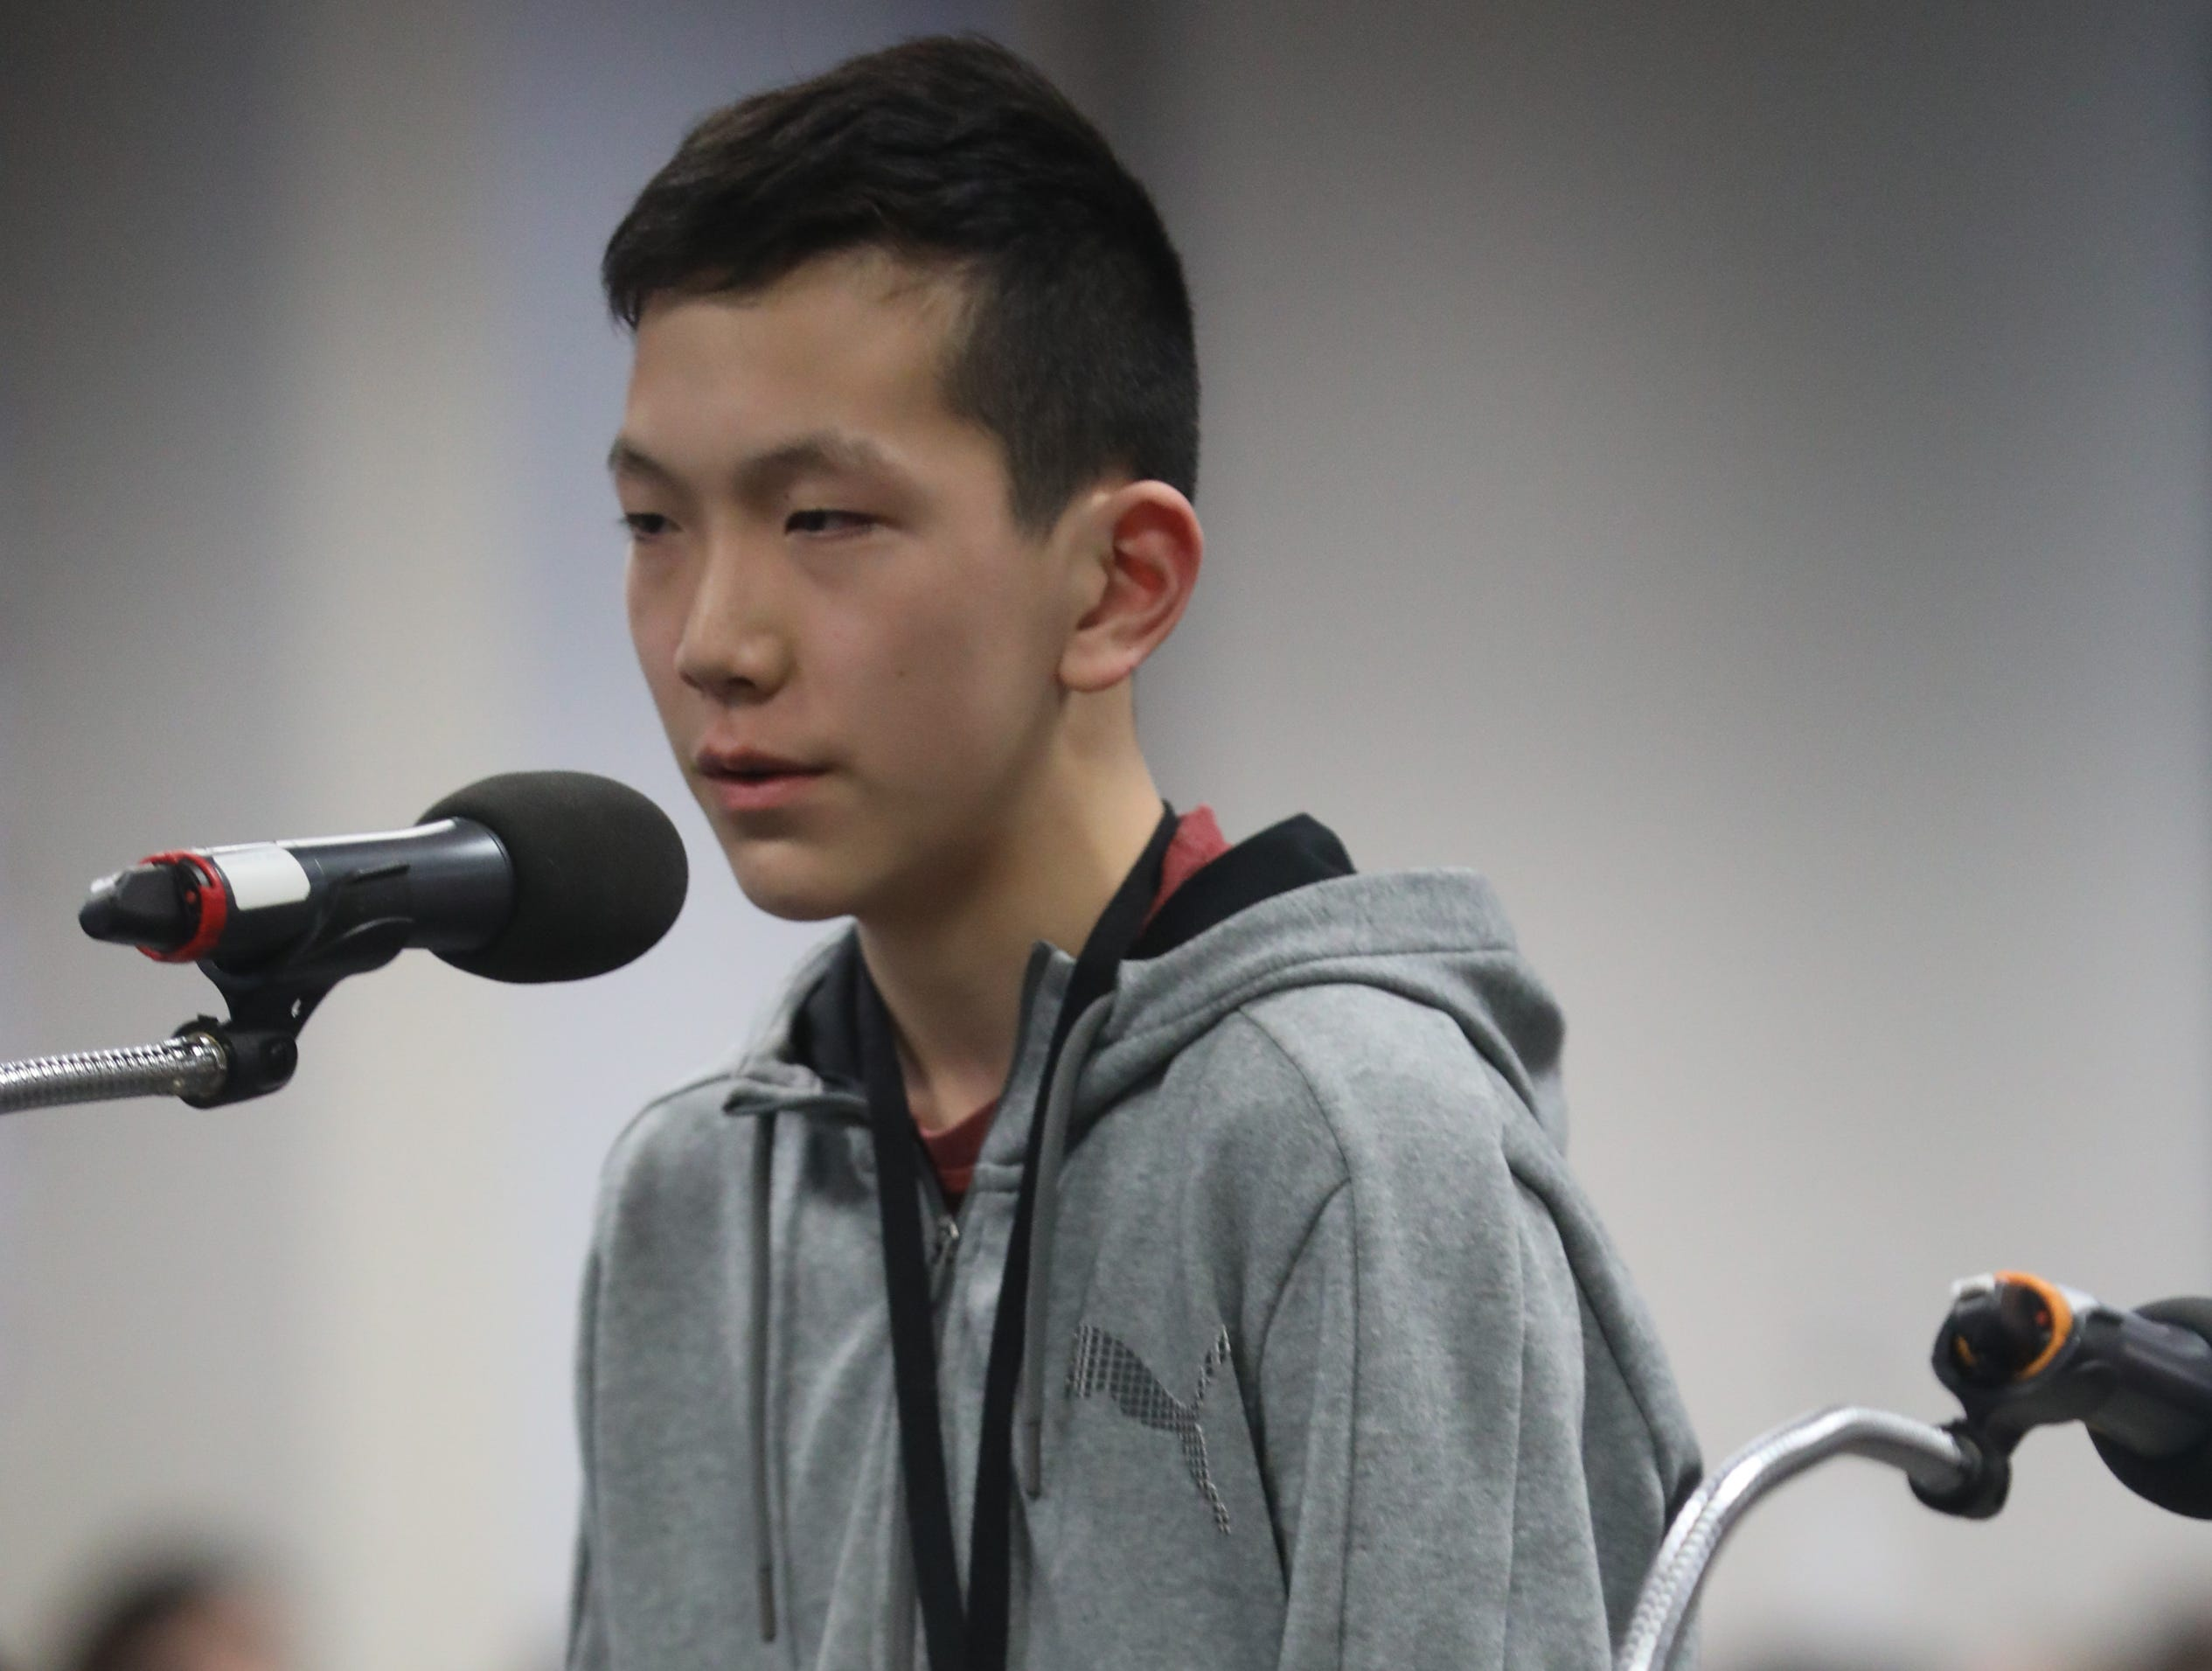 Matthew Chen, of Ridgewood, competes in the first round of the 2019 North Jersey Spelling Bee, in Paramus. Thursday, March 14, 2019